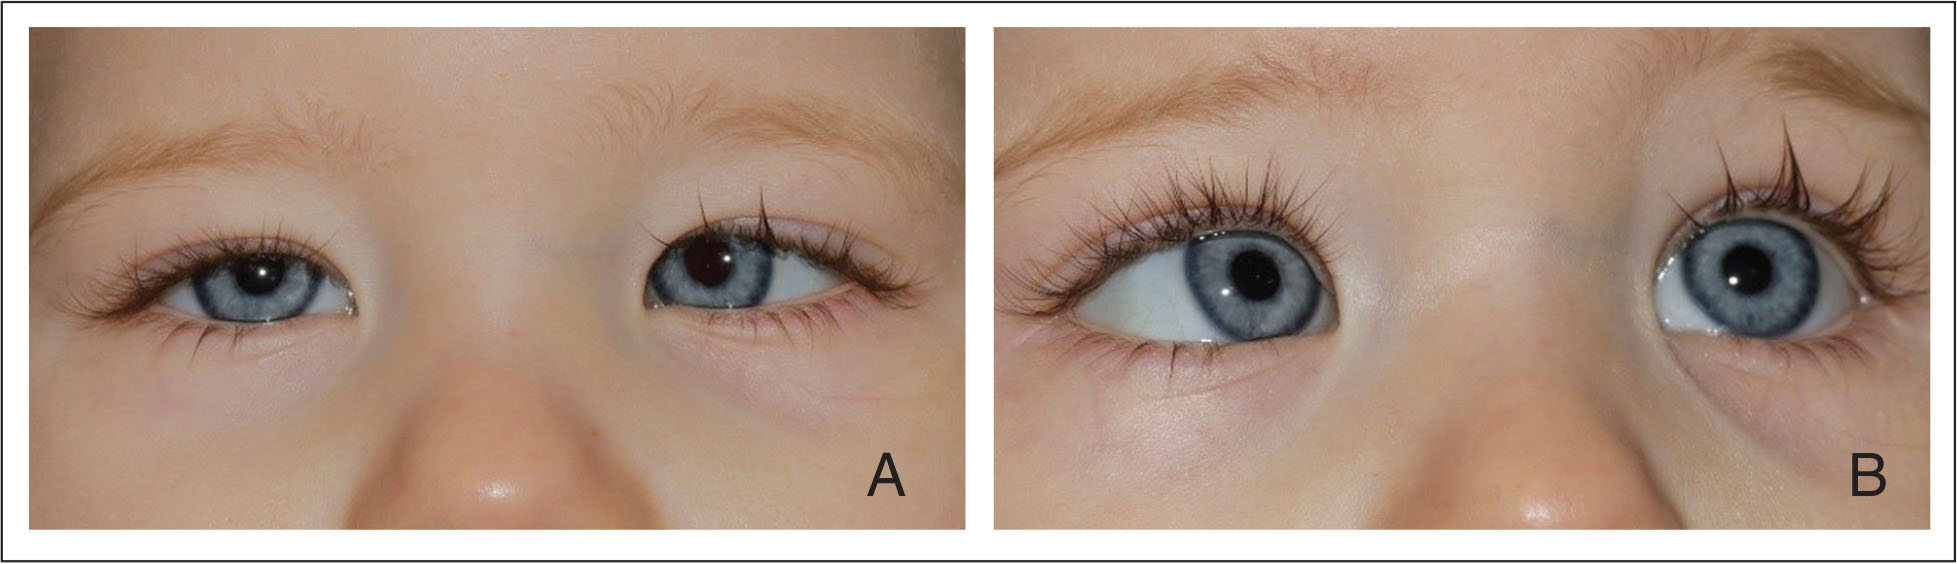 Preoperative photographs showing (A) primary gaze and (B) left gaze demonstrating a −2 abduction deficit.